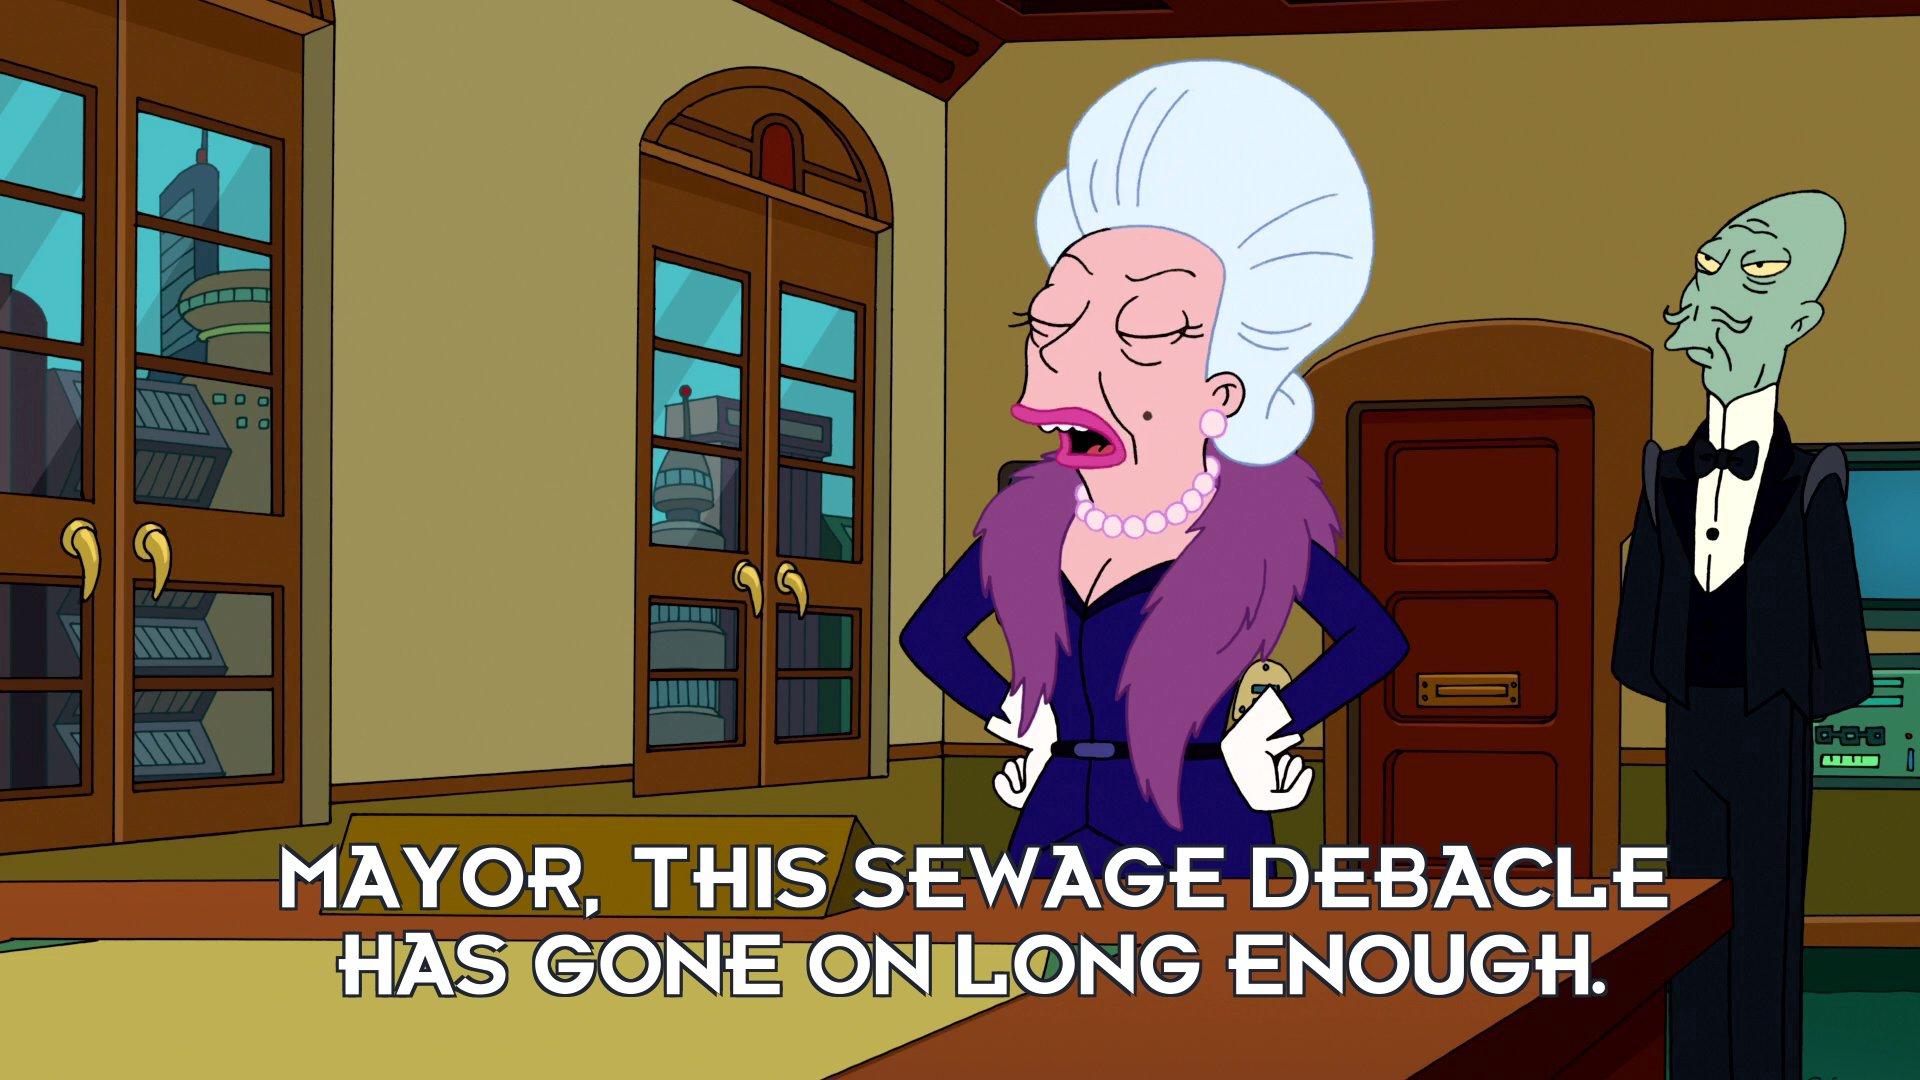 Mrs Astor: Mayor, this sewage debacle has gone on long enough.